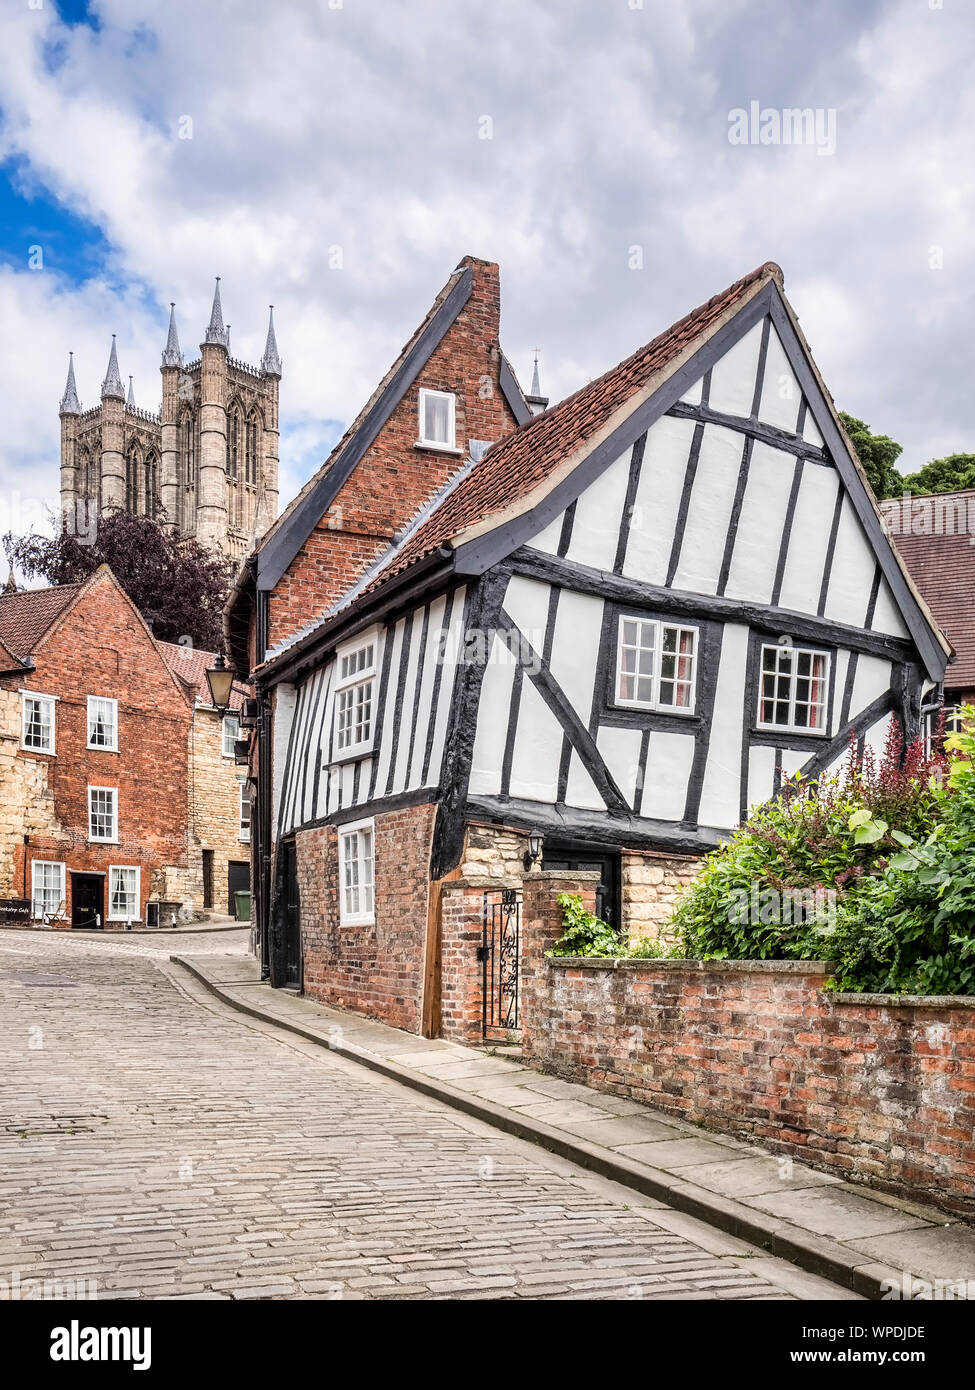 2 July 2019: Lincoln, Lincolnshire, UK - Crooked half-timbered house in Michaelgate, Lincoln. Stock Photo